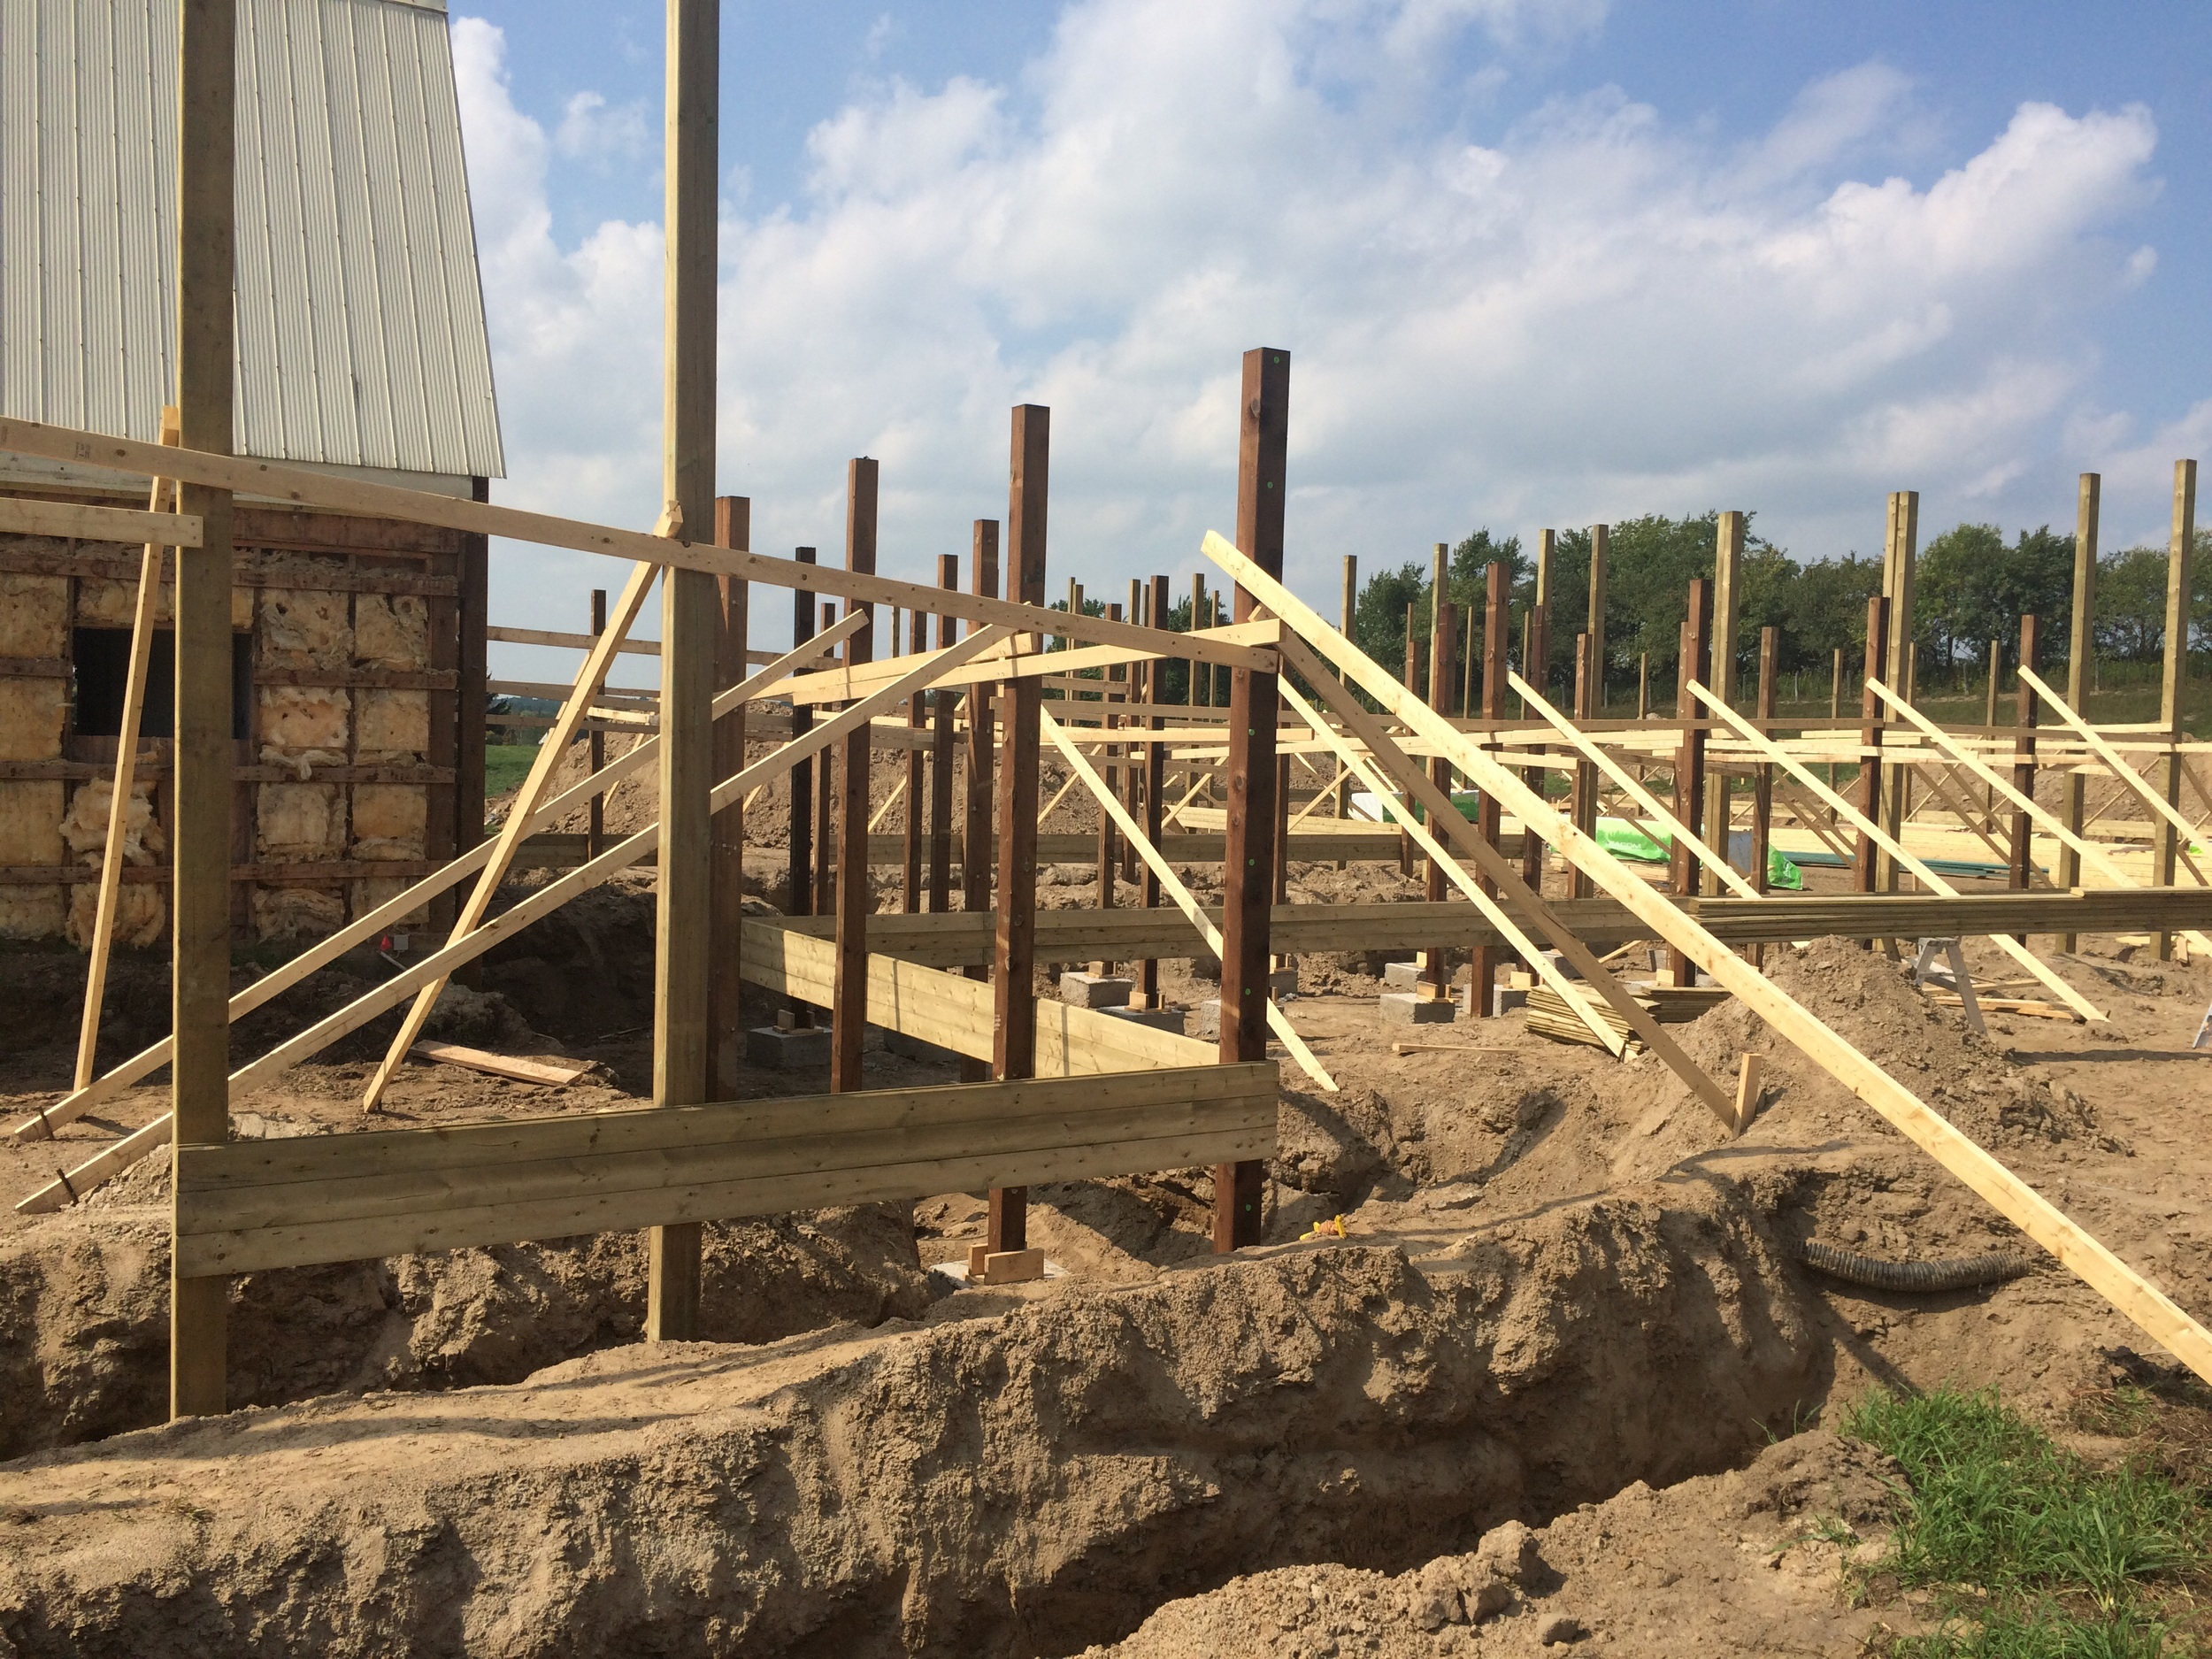 Posts for the new Tack Room